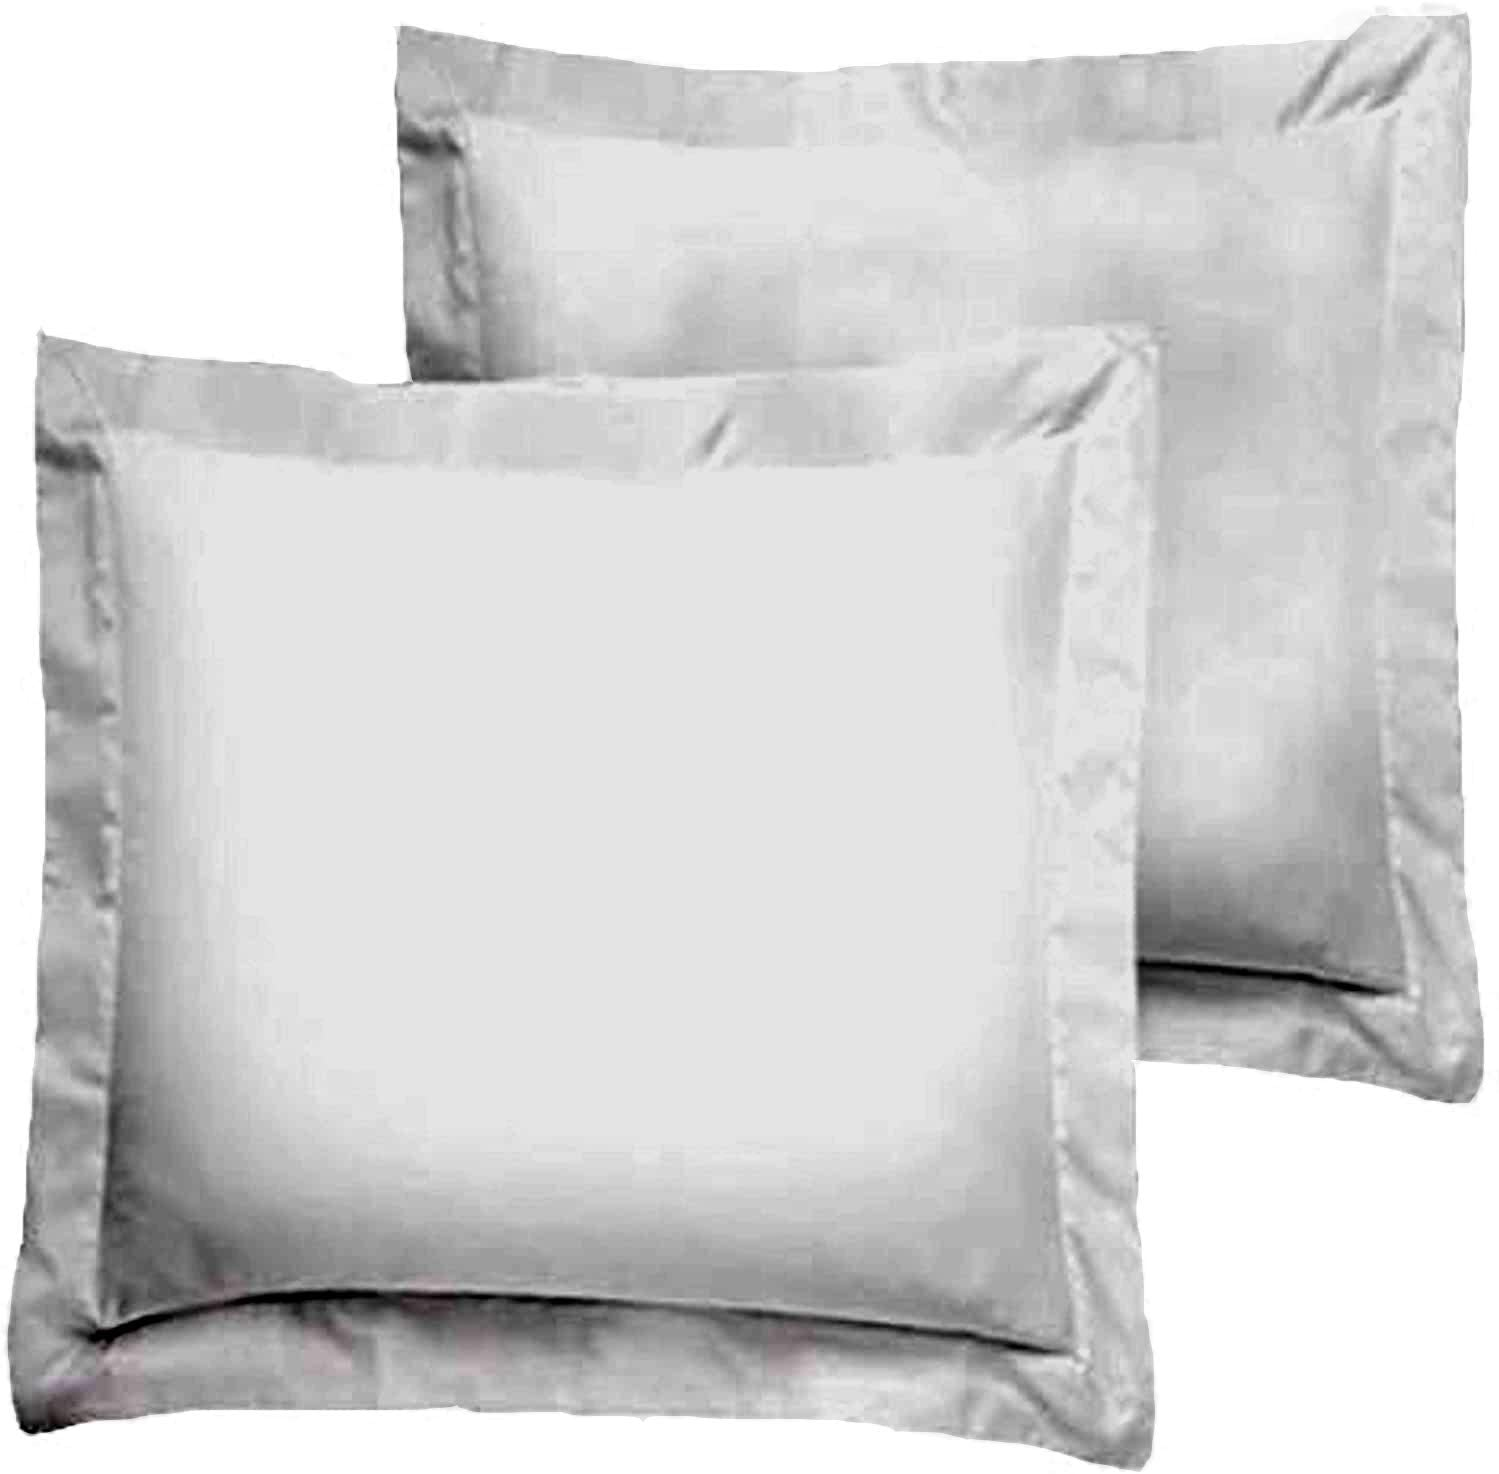 Trust Layer 800 Thread Count 100% Organic Cotton Throw Pillow Sized 18 x 18 inch Pillow Shams Set of 2 Silver Grey Solid